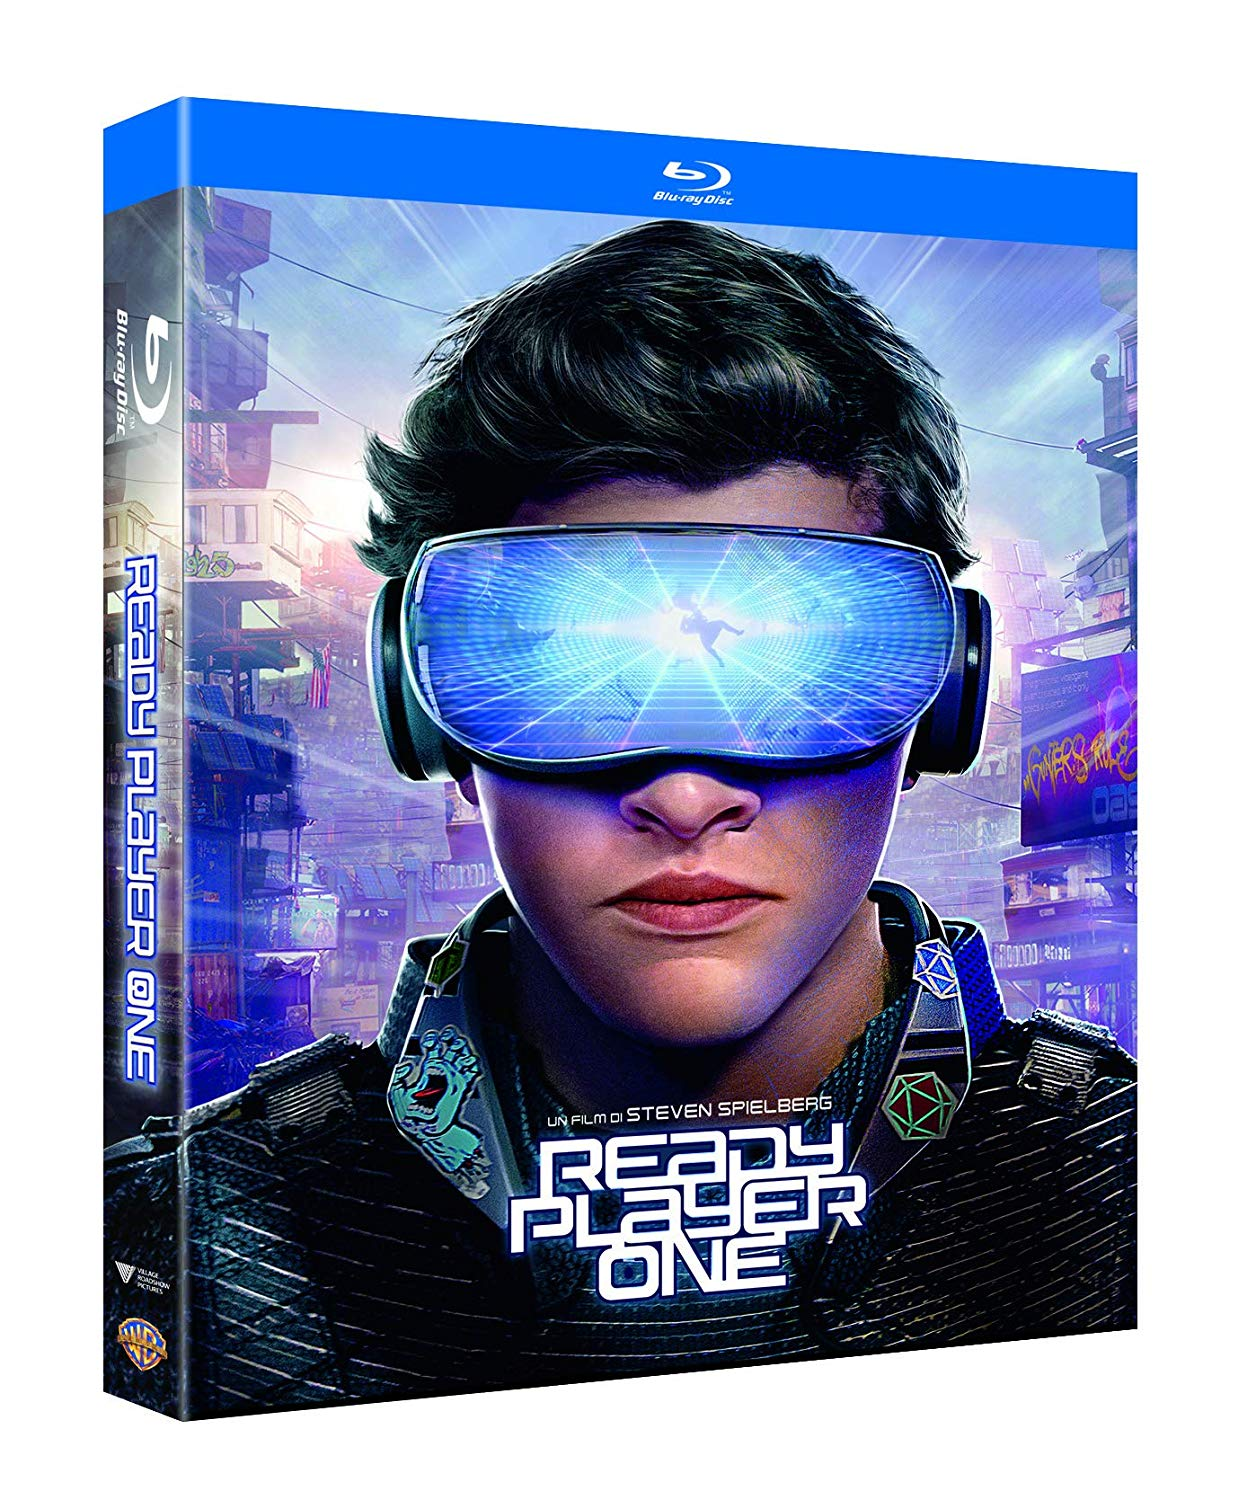 READY PLAYER ONE (LIMITED LENTICULAR O-RING) (DVD)